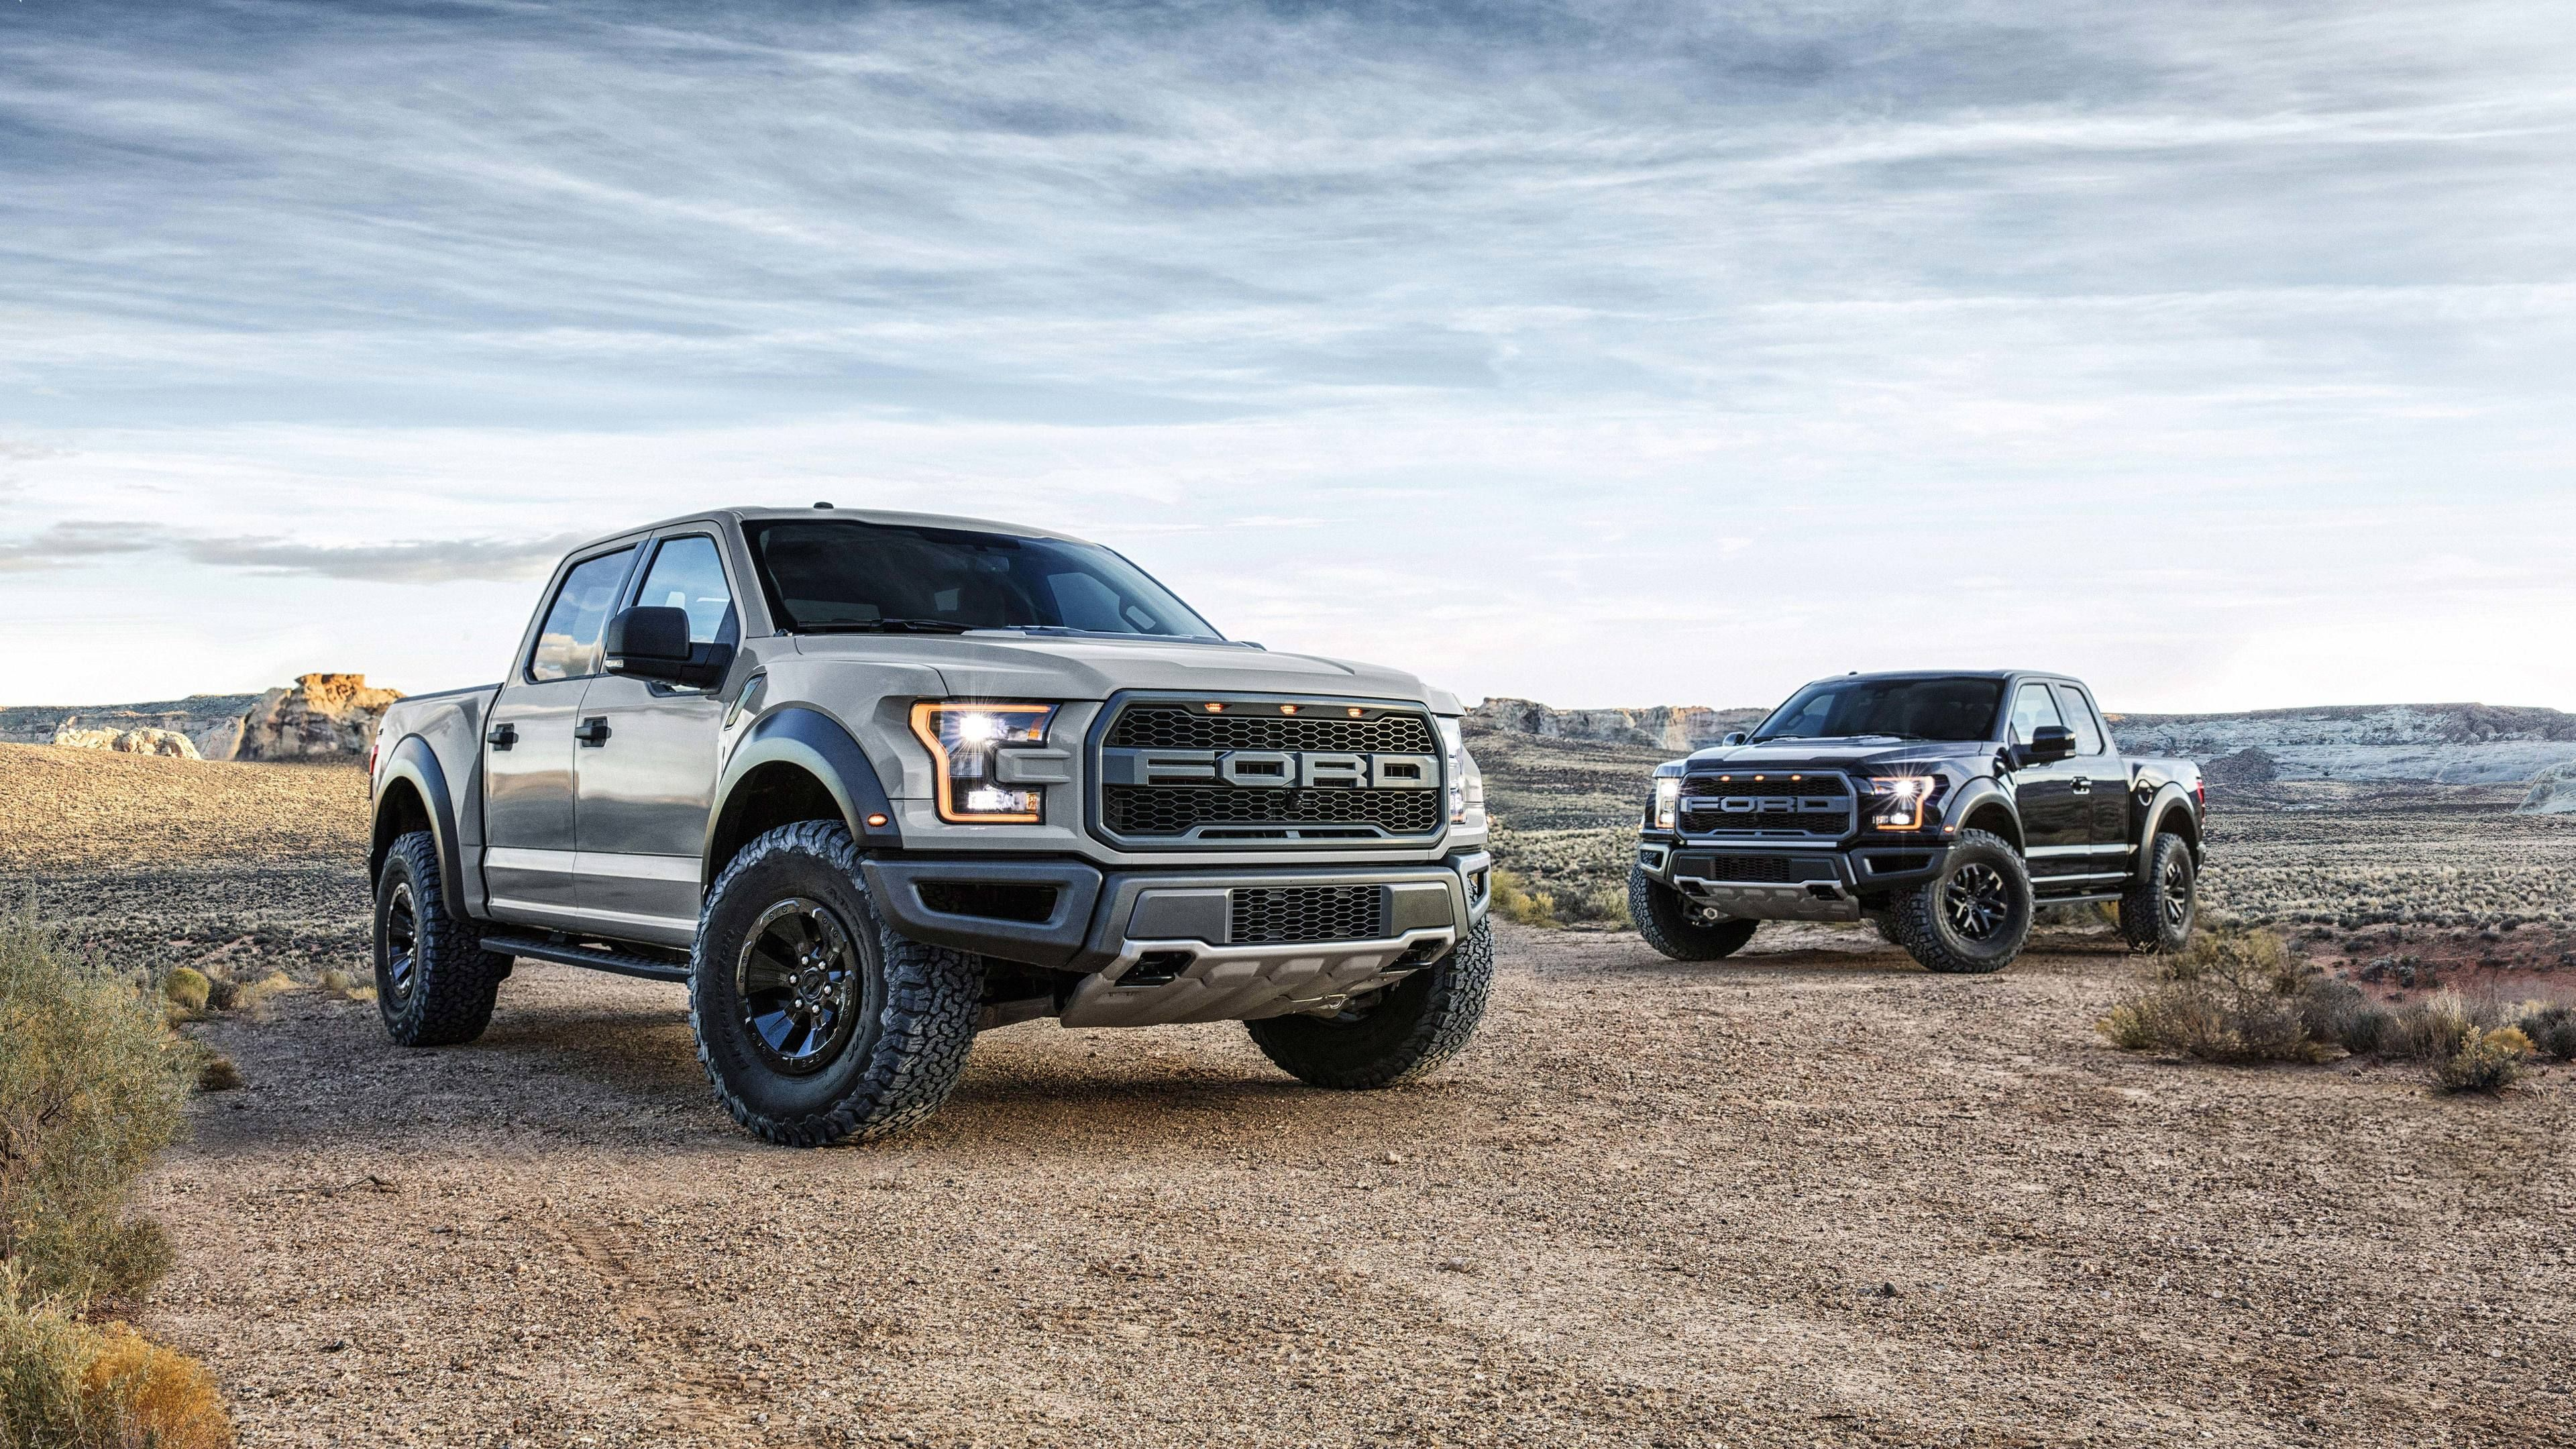 Ford F150 Raptor Truck Wallpapers Hd Wallpapers Ford Wallpapers